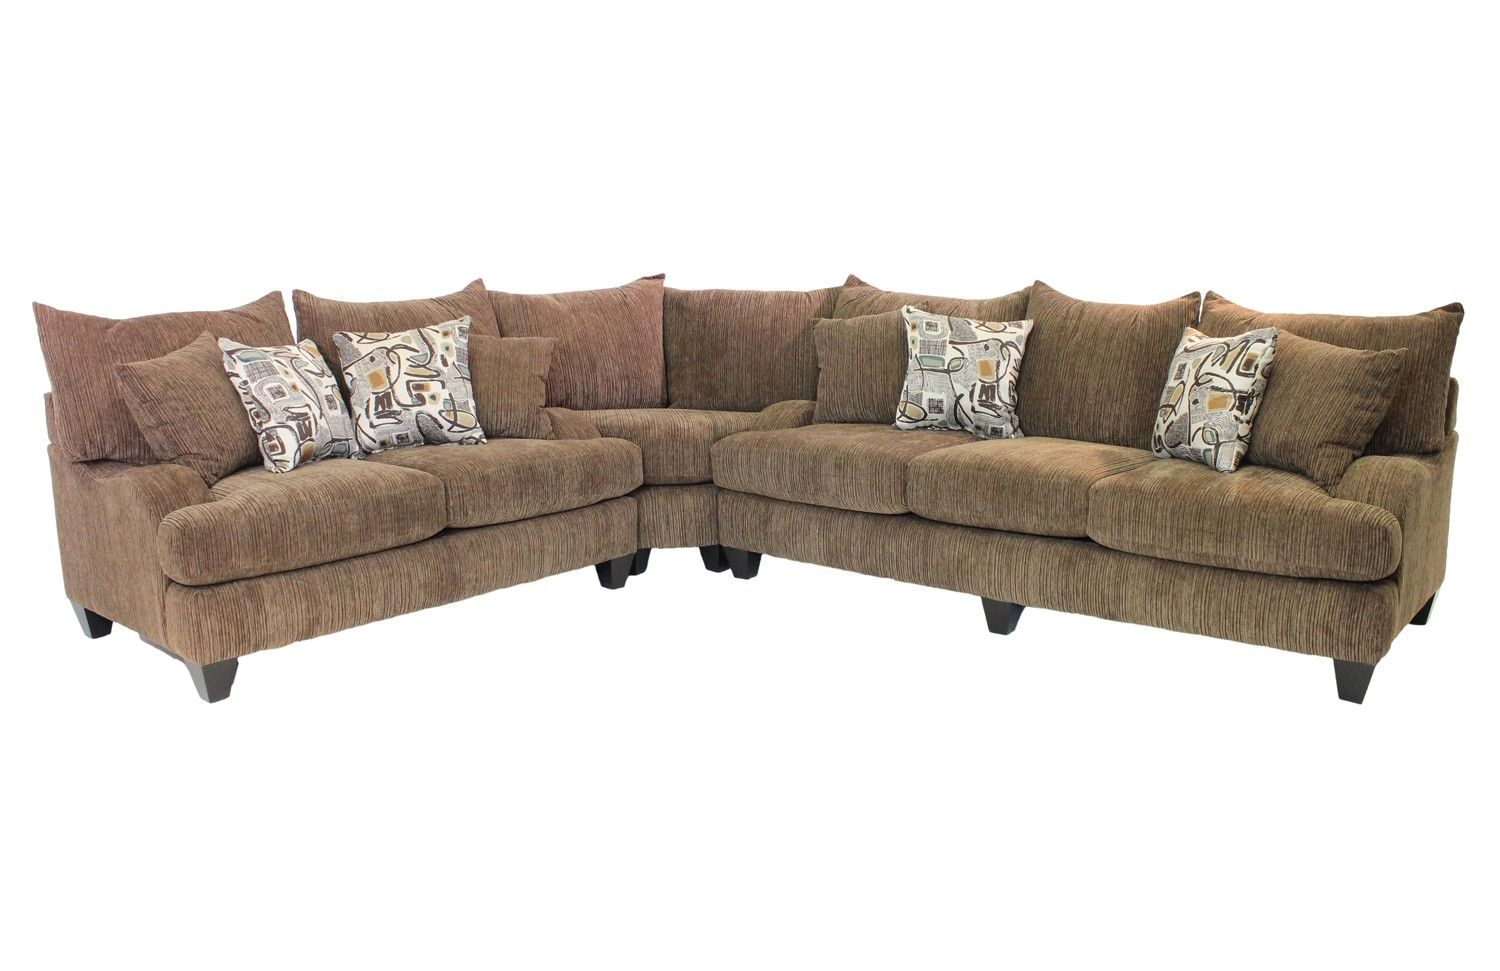 Tabby Brown Sectional - Living Room Furniture - Sale | Mor Furniture ...